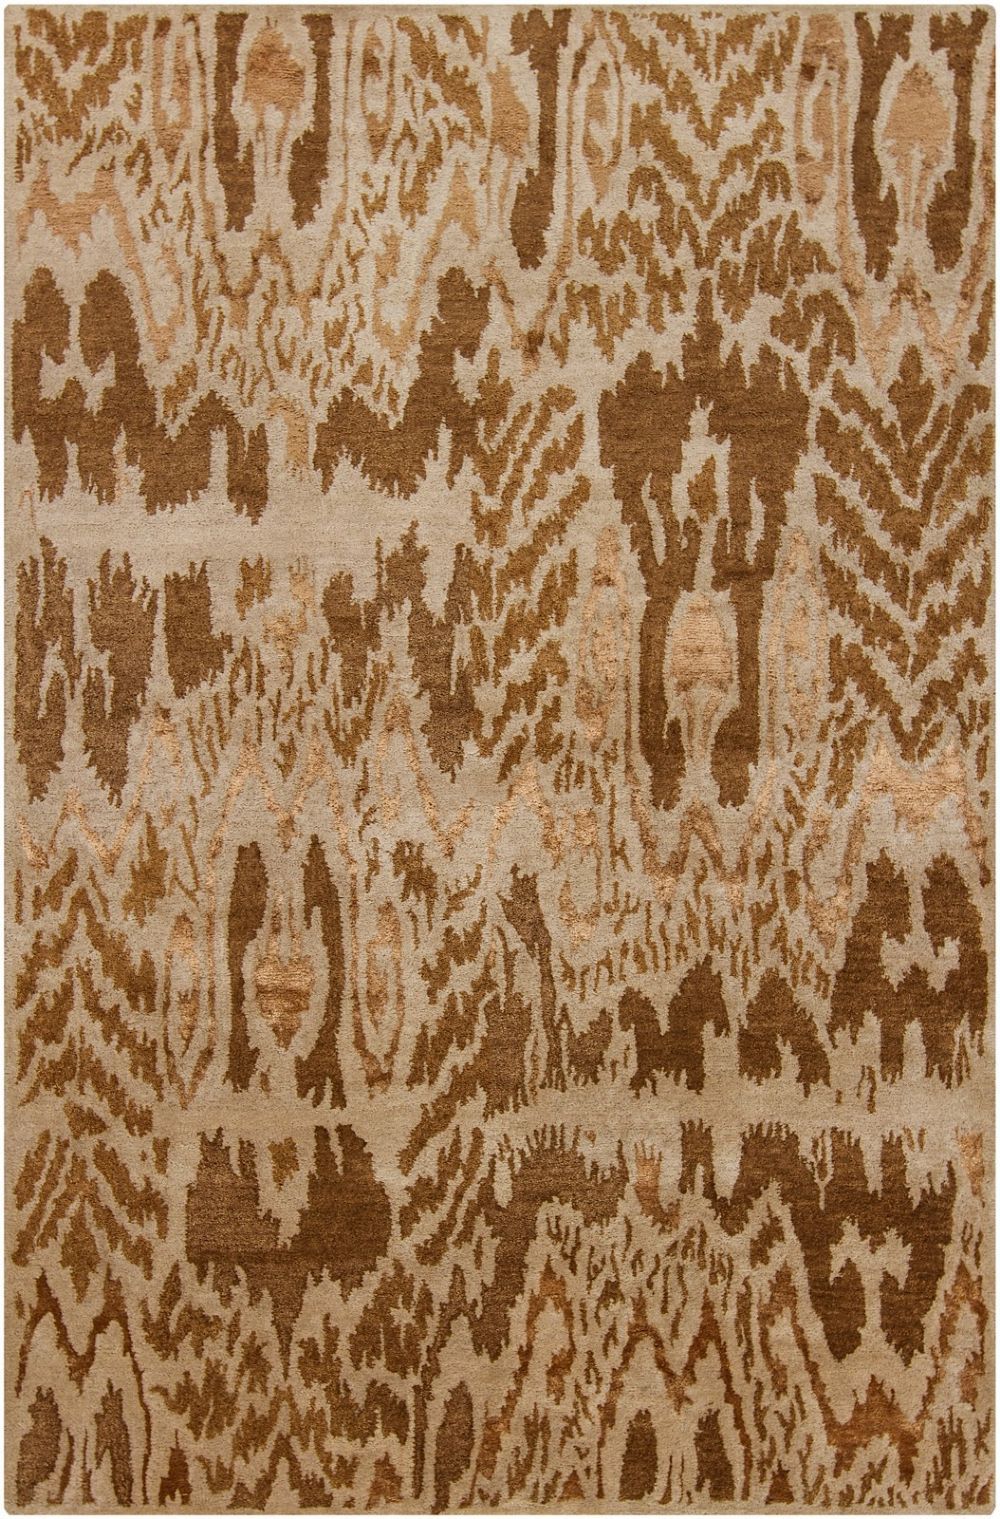 chandra rupec contemporary area rug collection